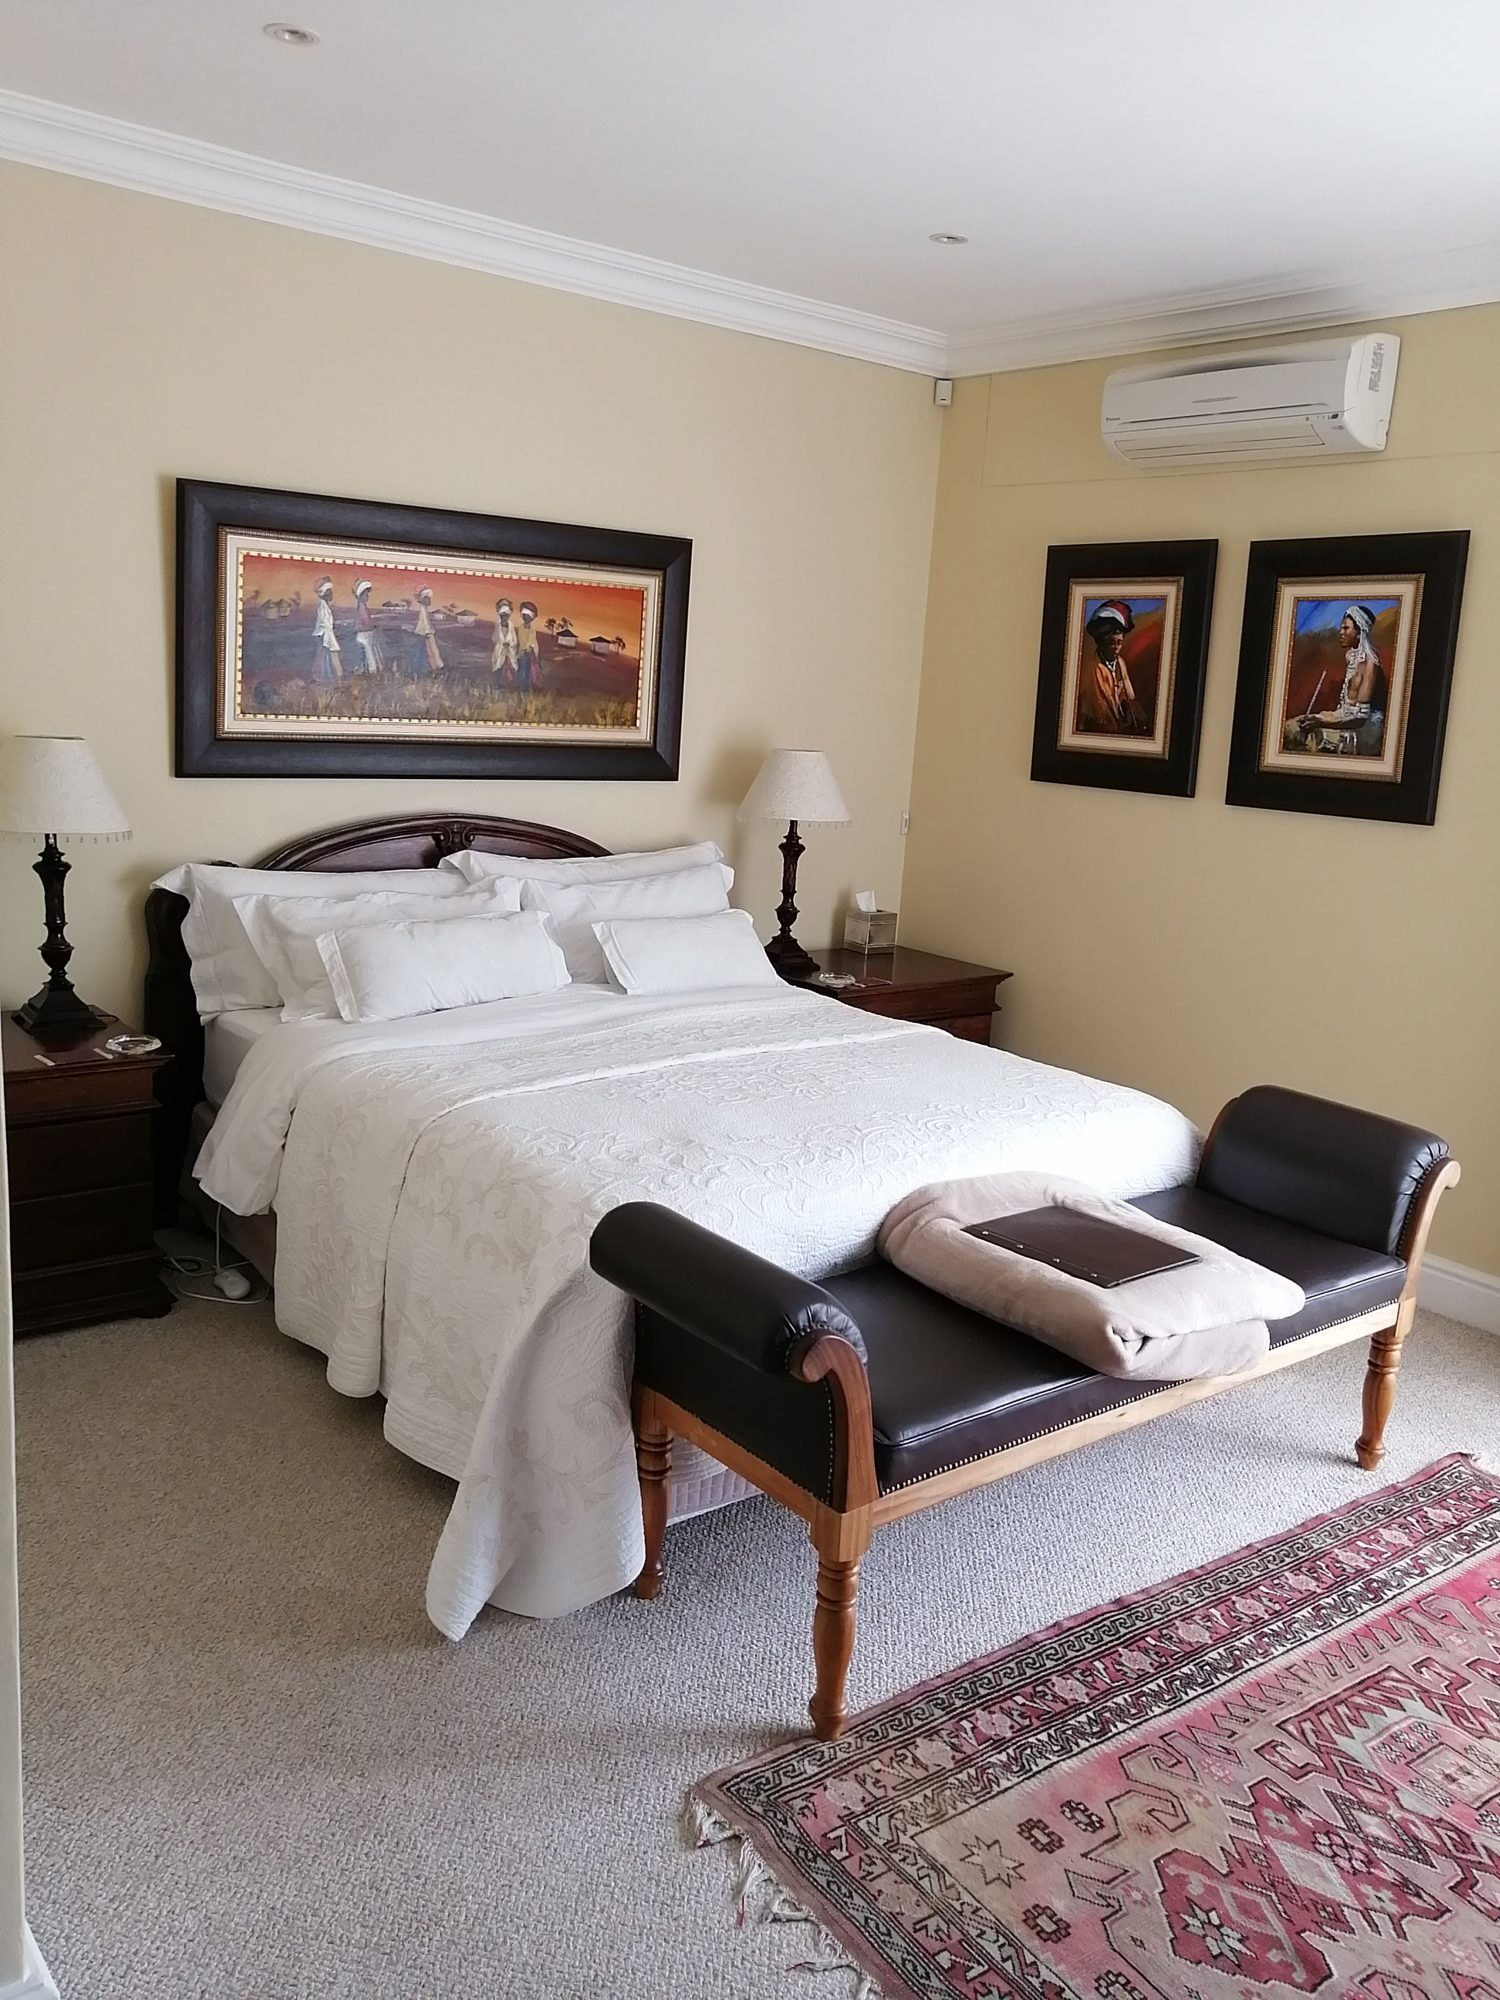 Villa Afrique – Accommodation - Hout Bay – Cape Town (3)